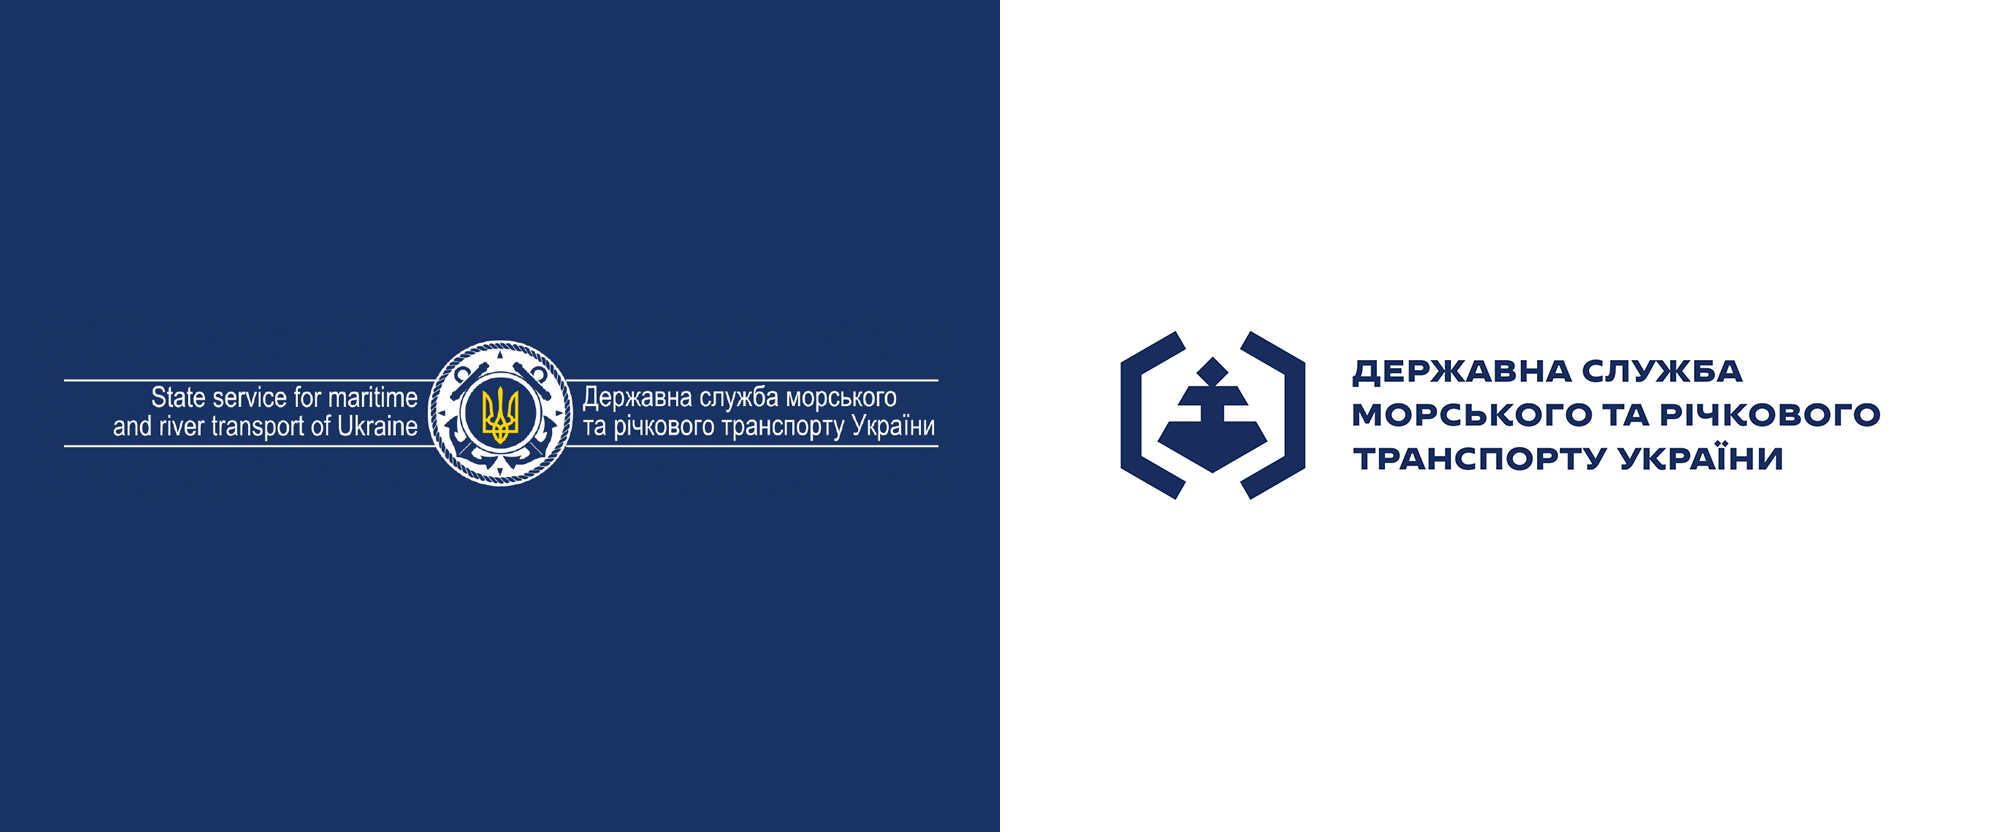 New Logo and Identity for Ukraine Maritime Administration by Bulanov büro